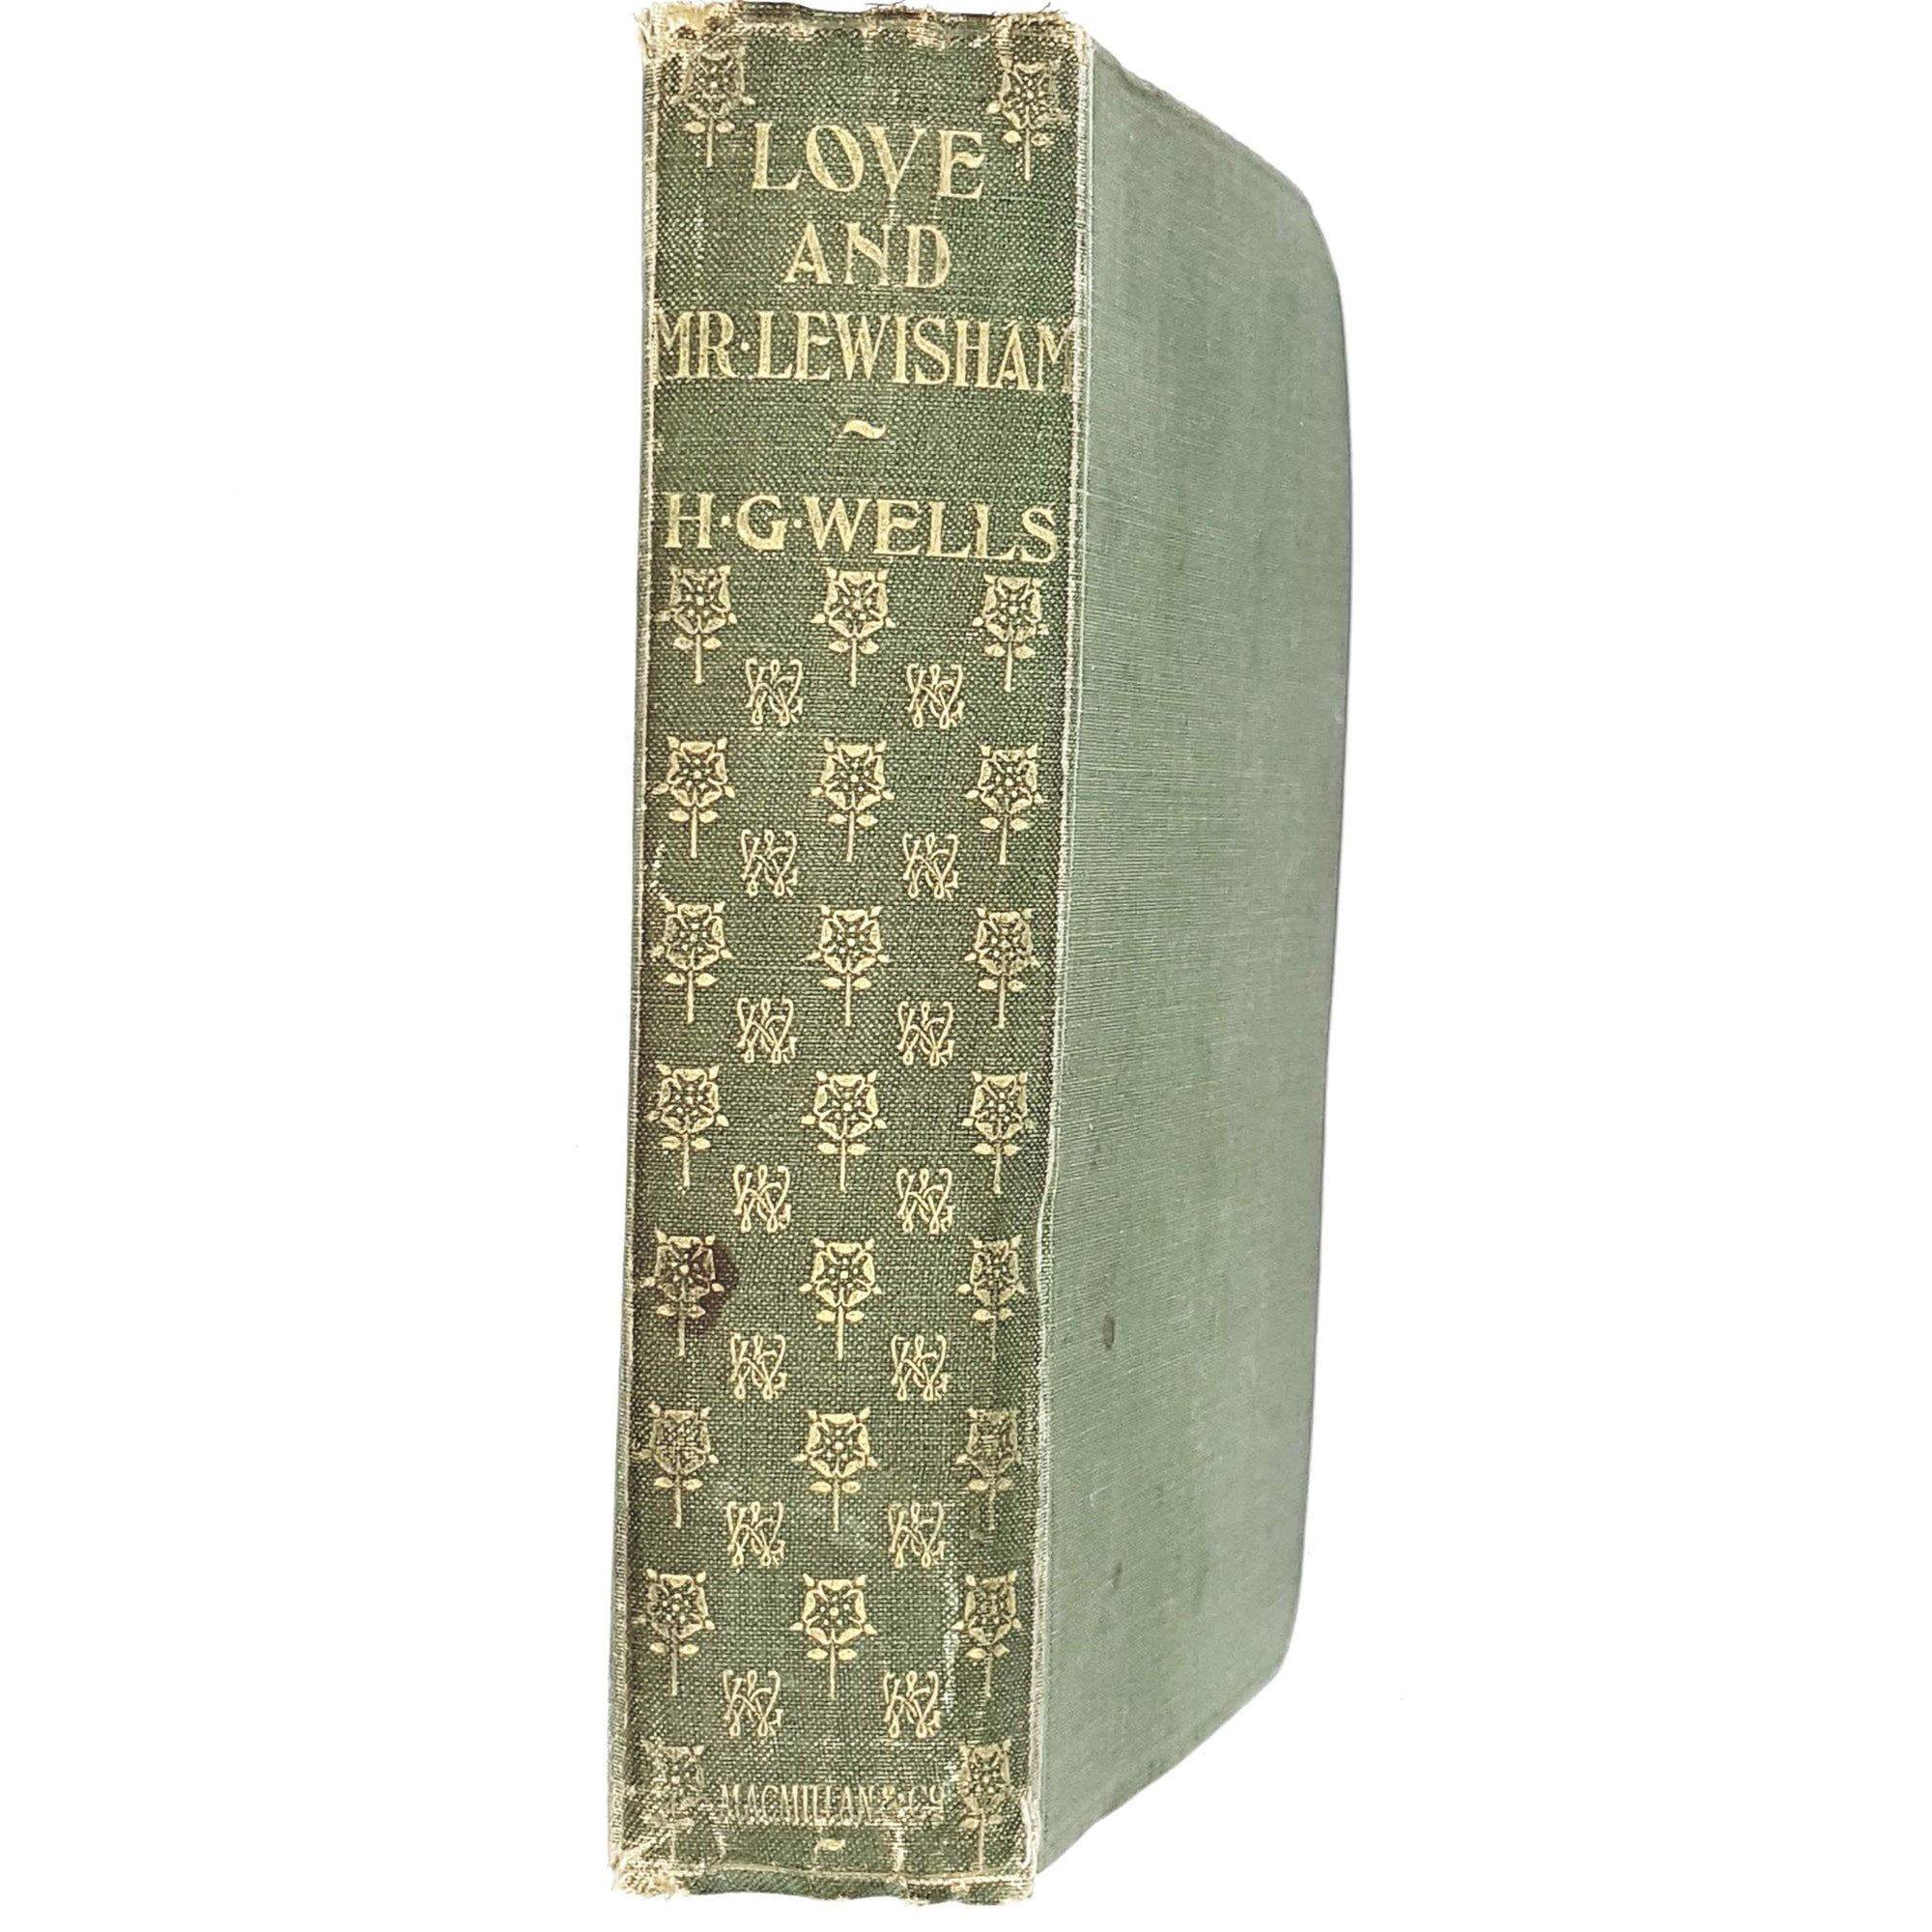 H. G. Wells's Love and Mr. Lewisham 1906